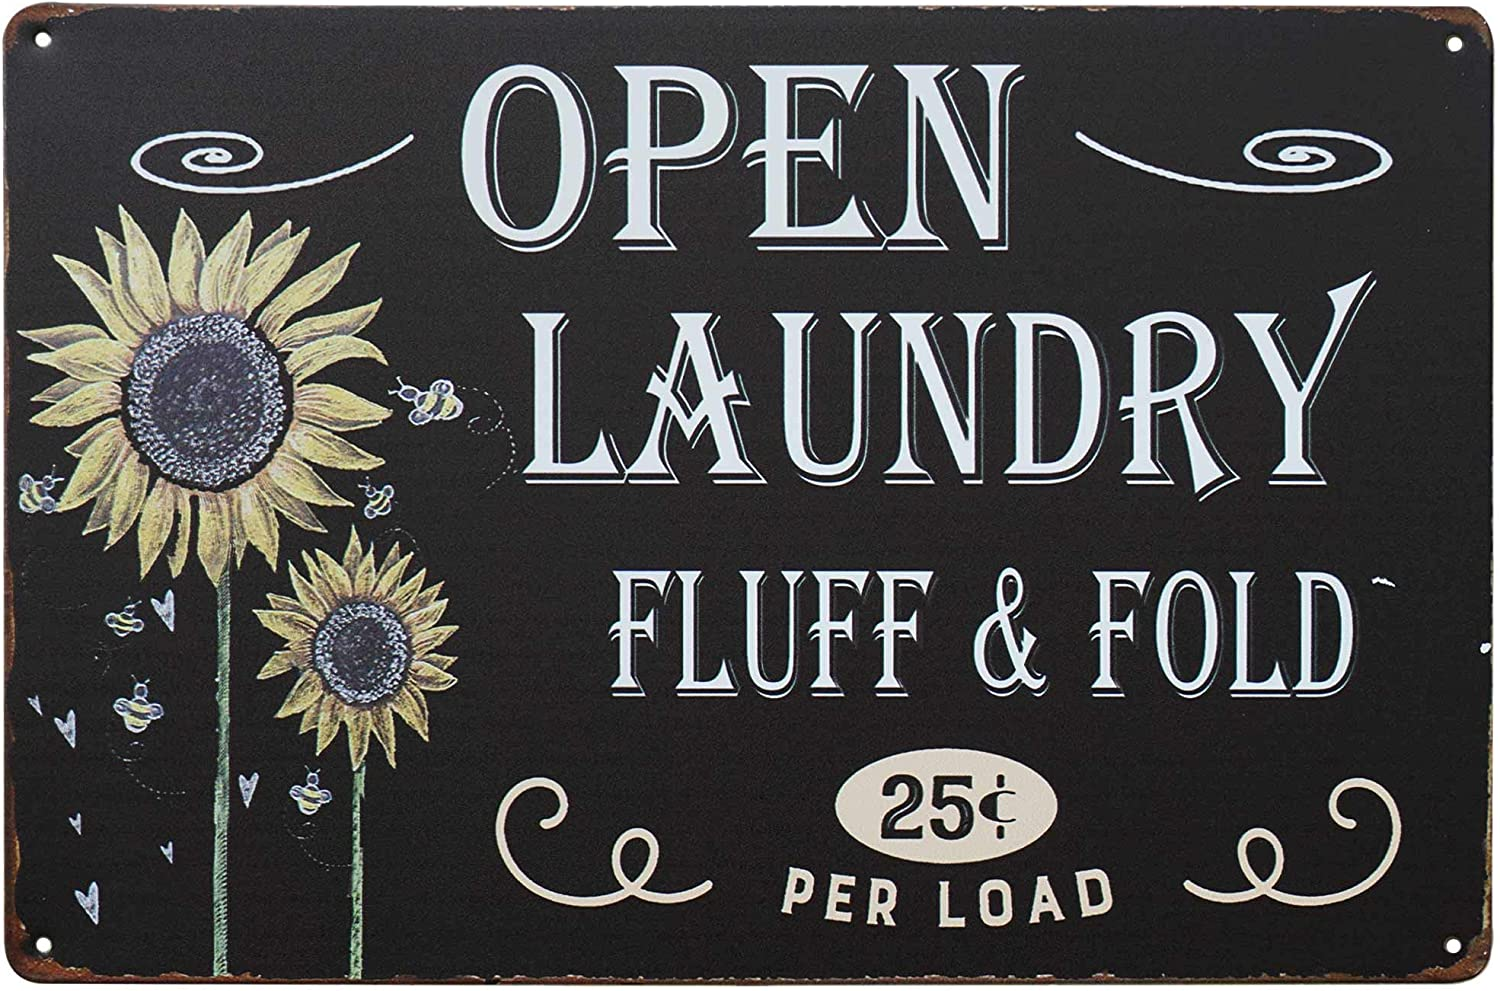 PXIYOU Sunflower Open Laundry Fluff Fold Vintage Farmhouse Laundry Room Sign Country Wall Decor Wash Room Signs Wall Home Decor Art Hanging Signs 8X12Inch